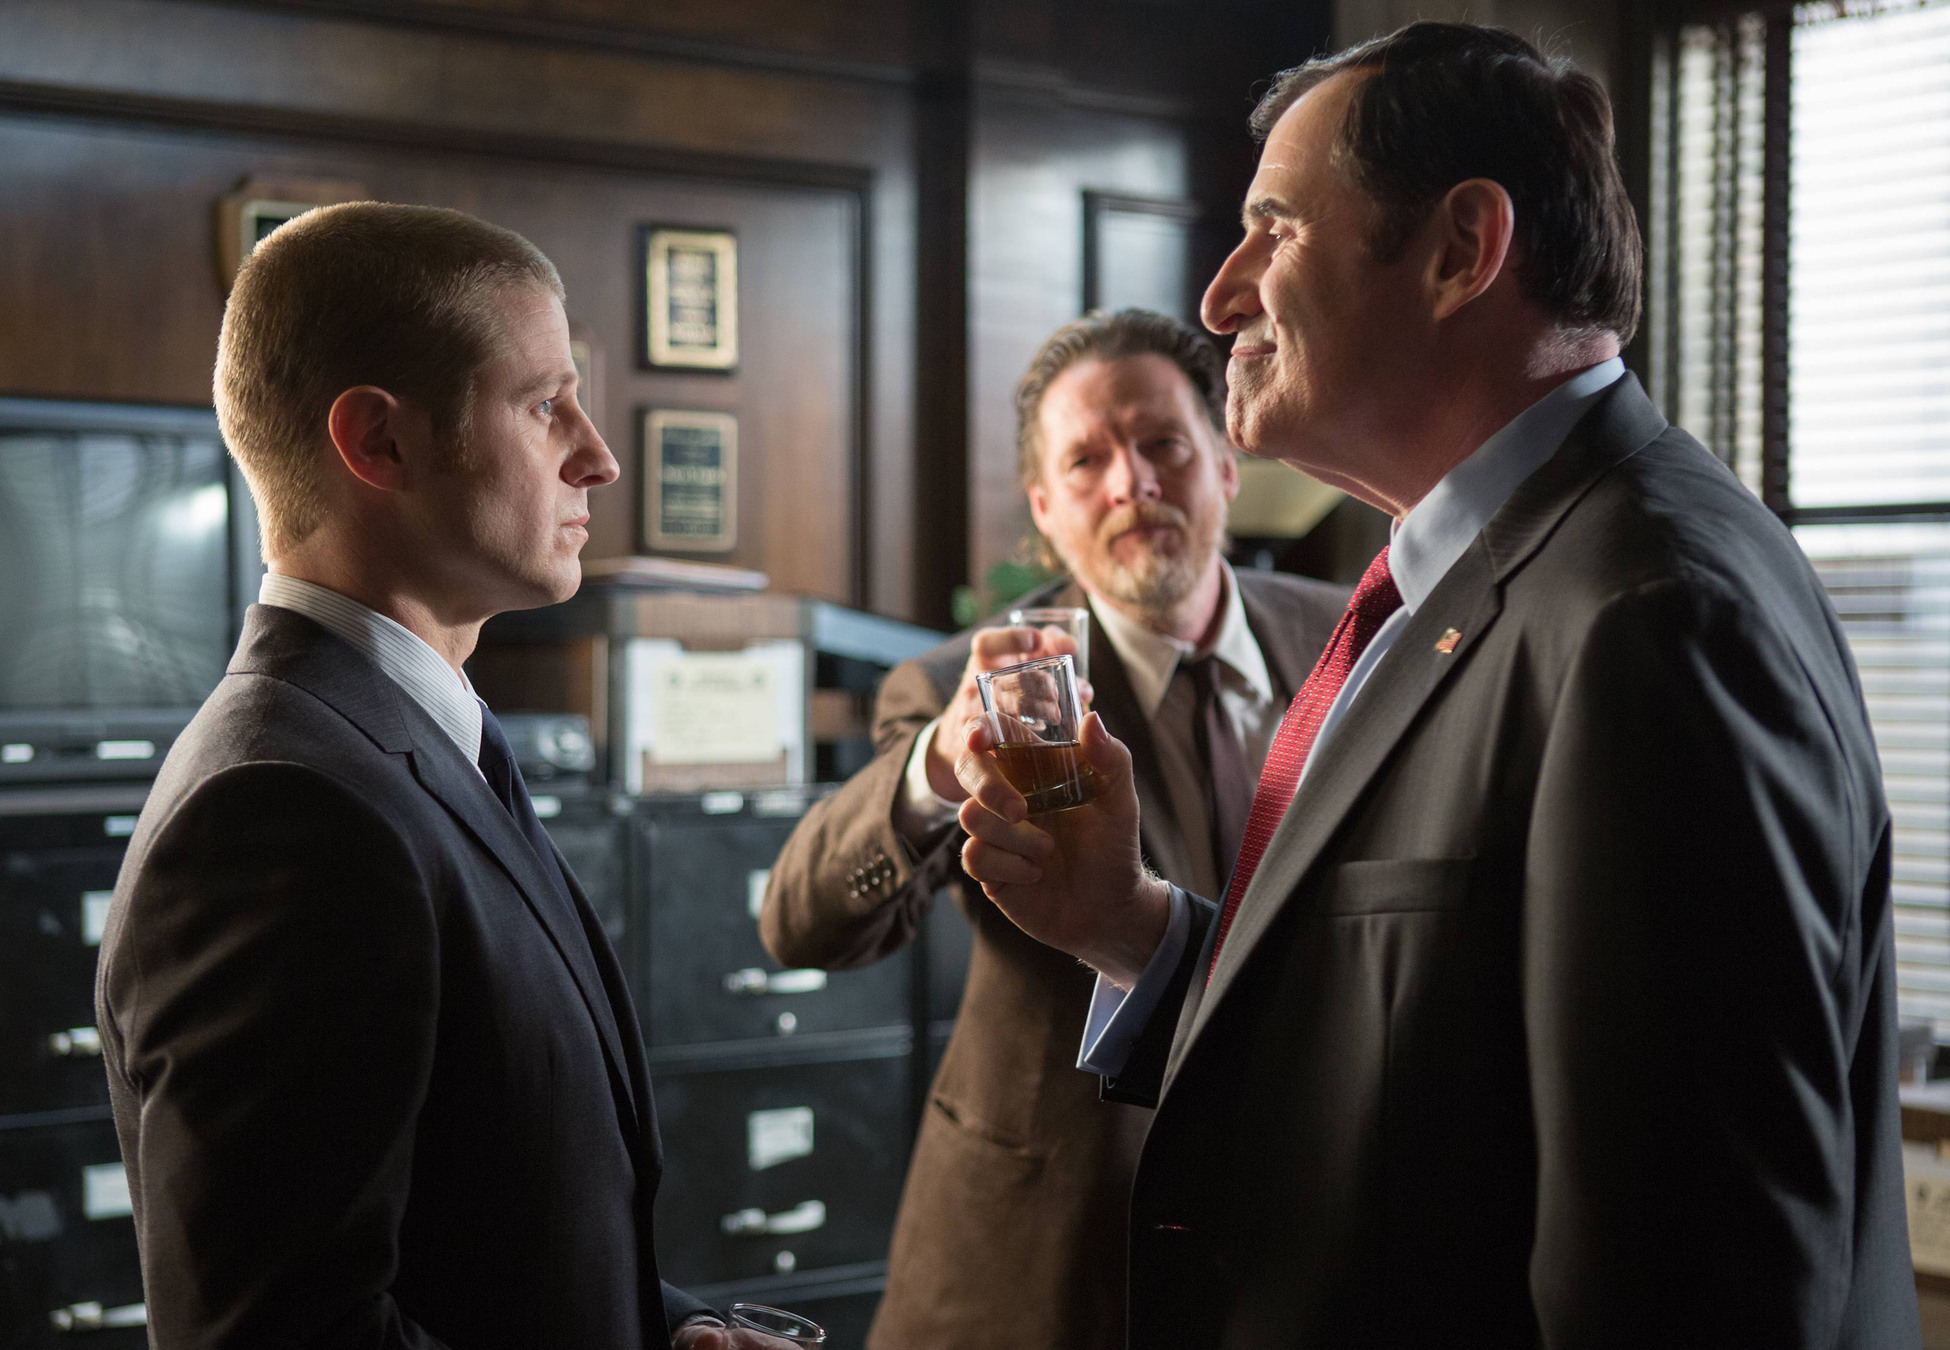 """GOTHAM: Detectives Gordon (Ben McKenzie, L) and Bullock (Donal Logue, C) are commended by the Mayor (guest star Richard Kind, R) in the """"Selina Kyle"""" episode of GOTHAM airing Monday, Sept. 29 (8:00-9:00 PM ET/PT) on FOX. ©2014 Fox Broadcasting Co. Cr: Jessica Miglio/FOX"""